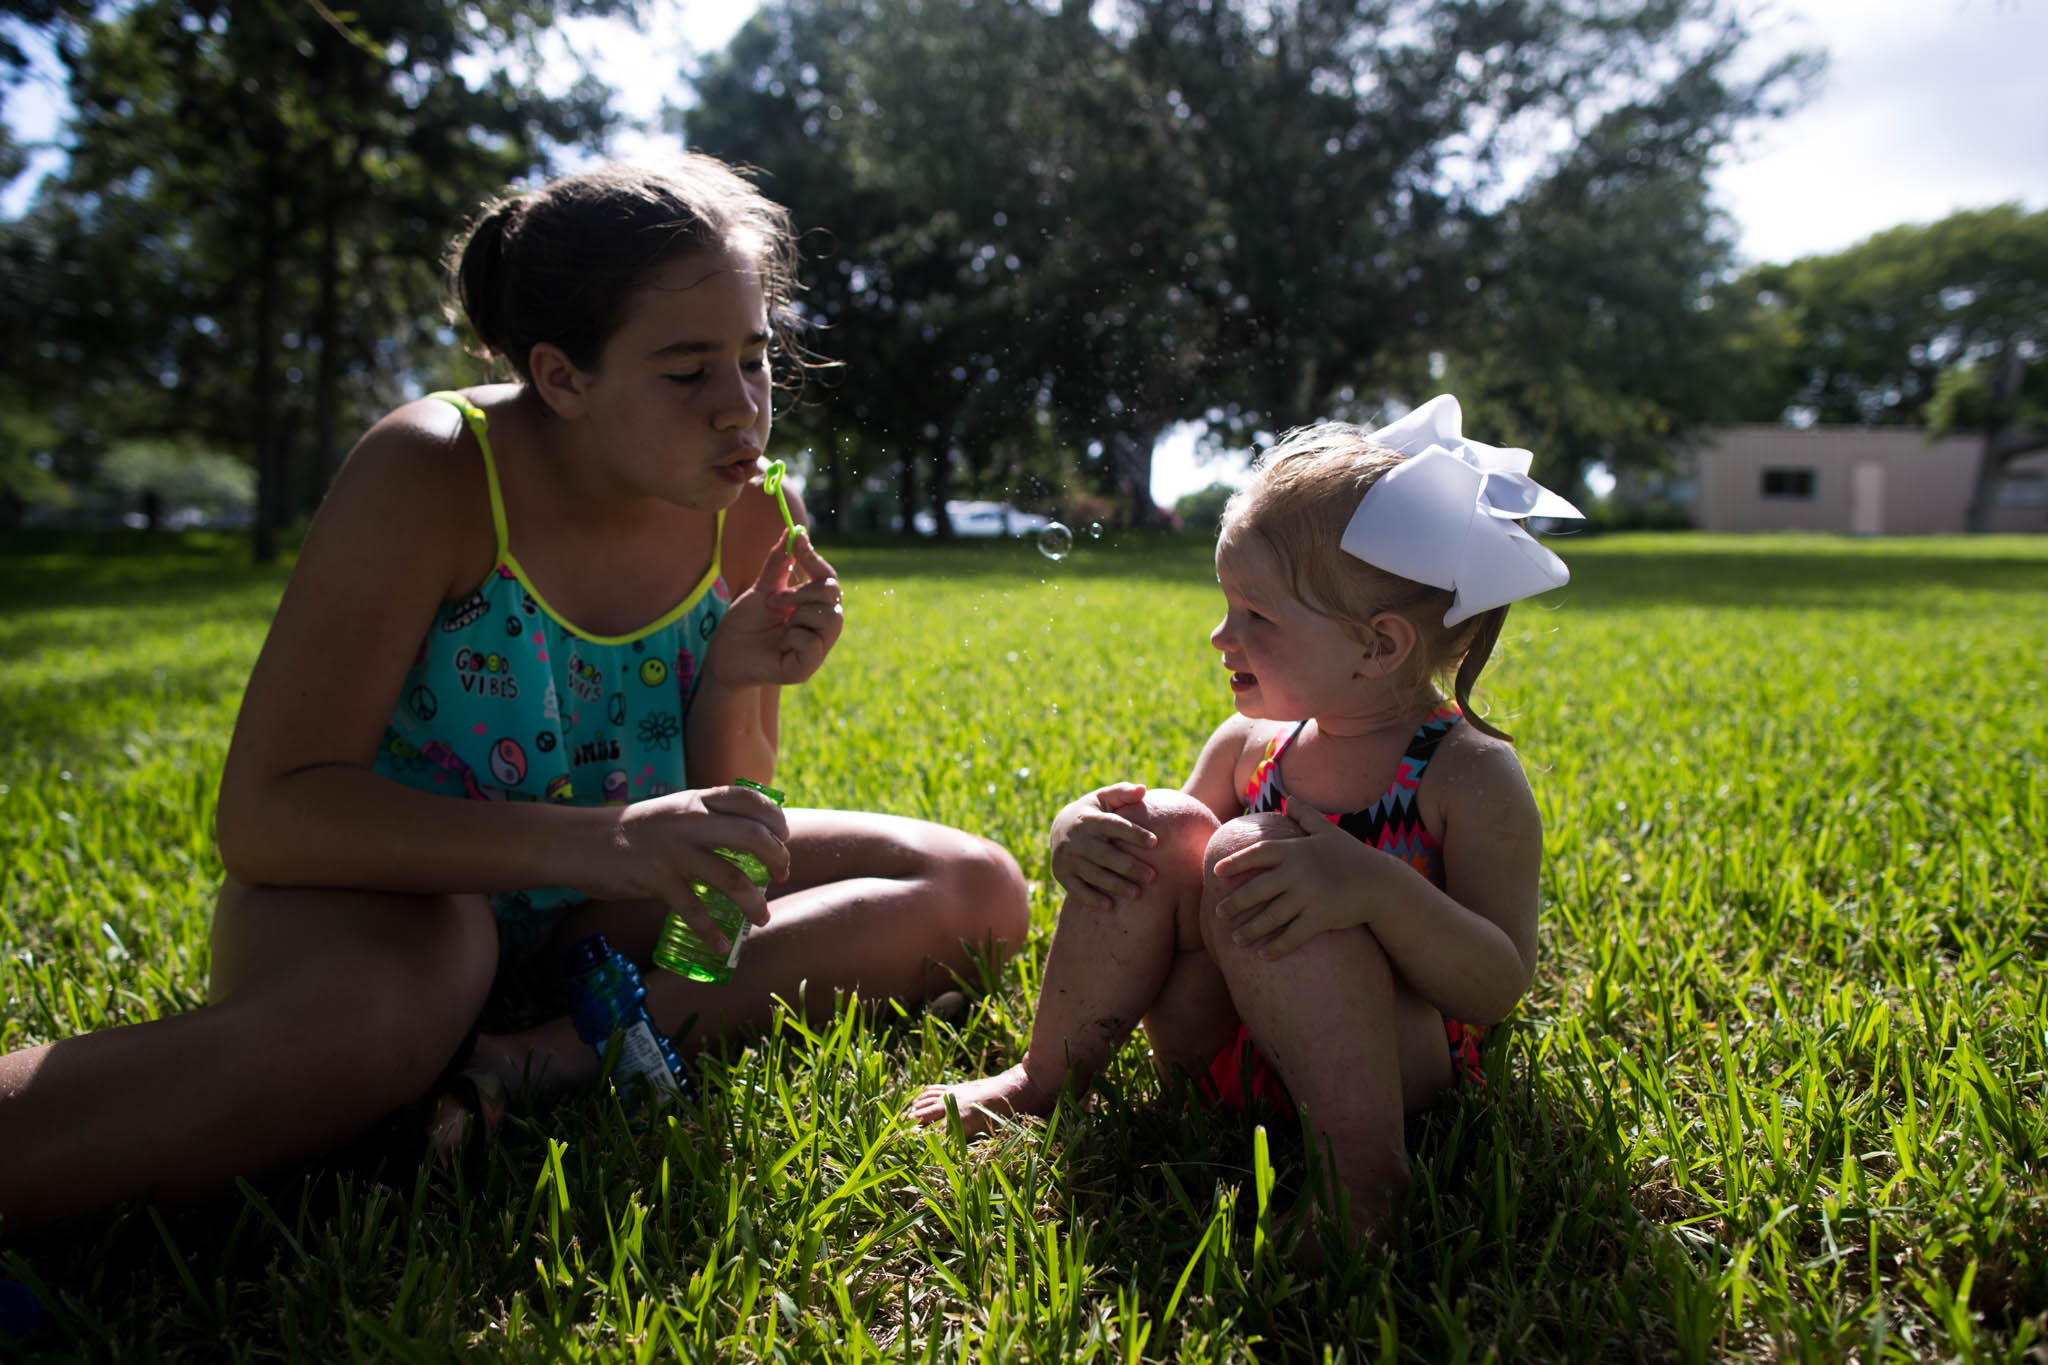 Lawren Rose Photography captures the perfect moment between two girls who are sitting in grass blowing bubbles